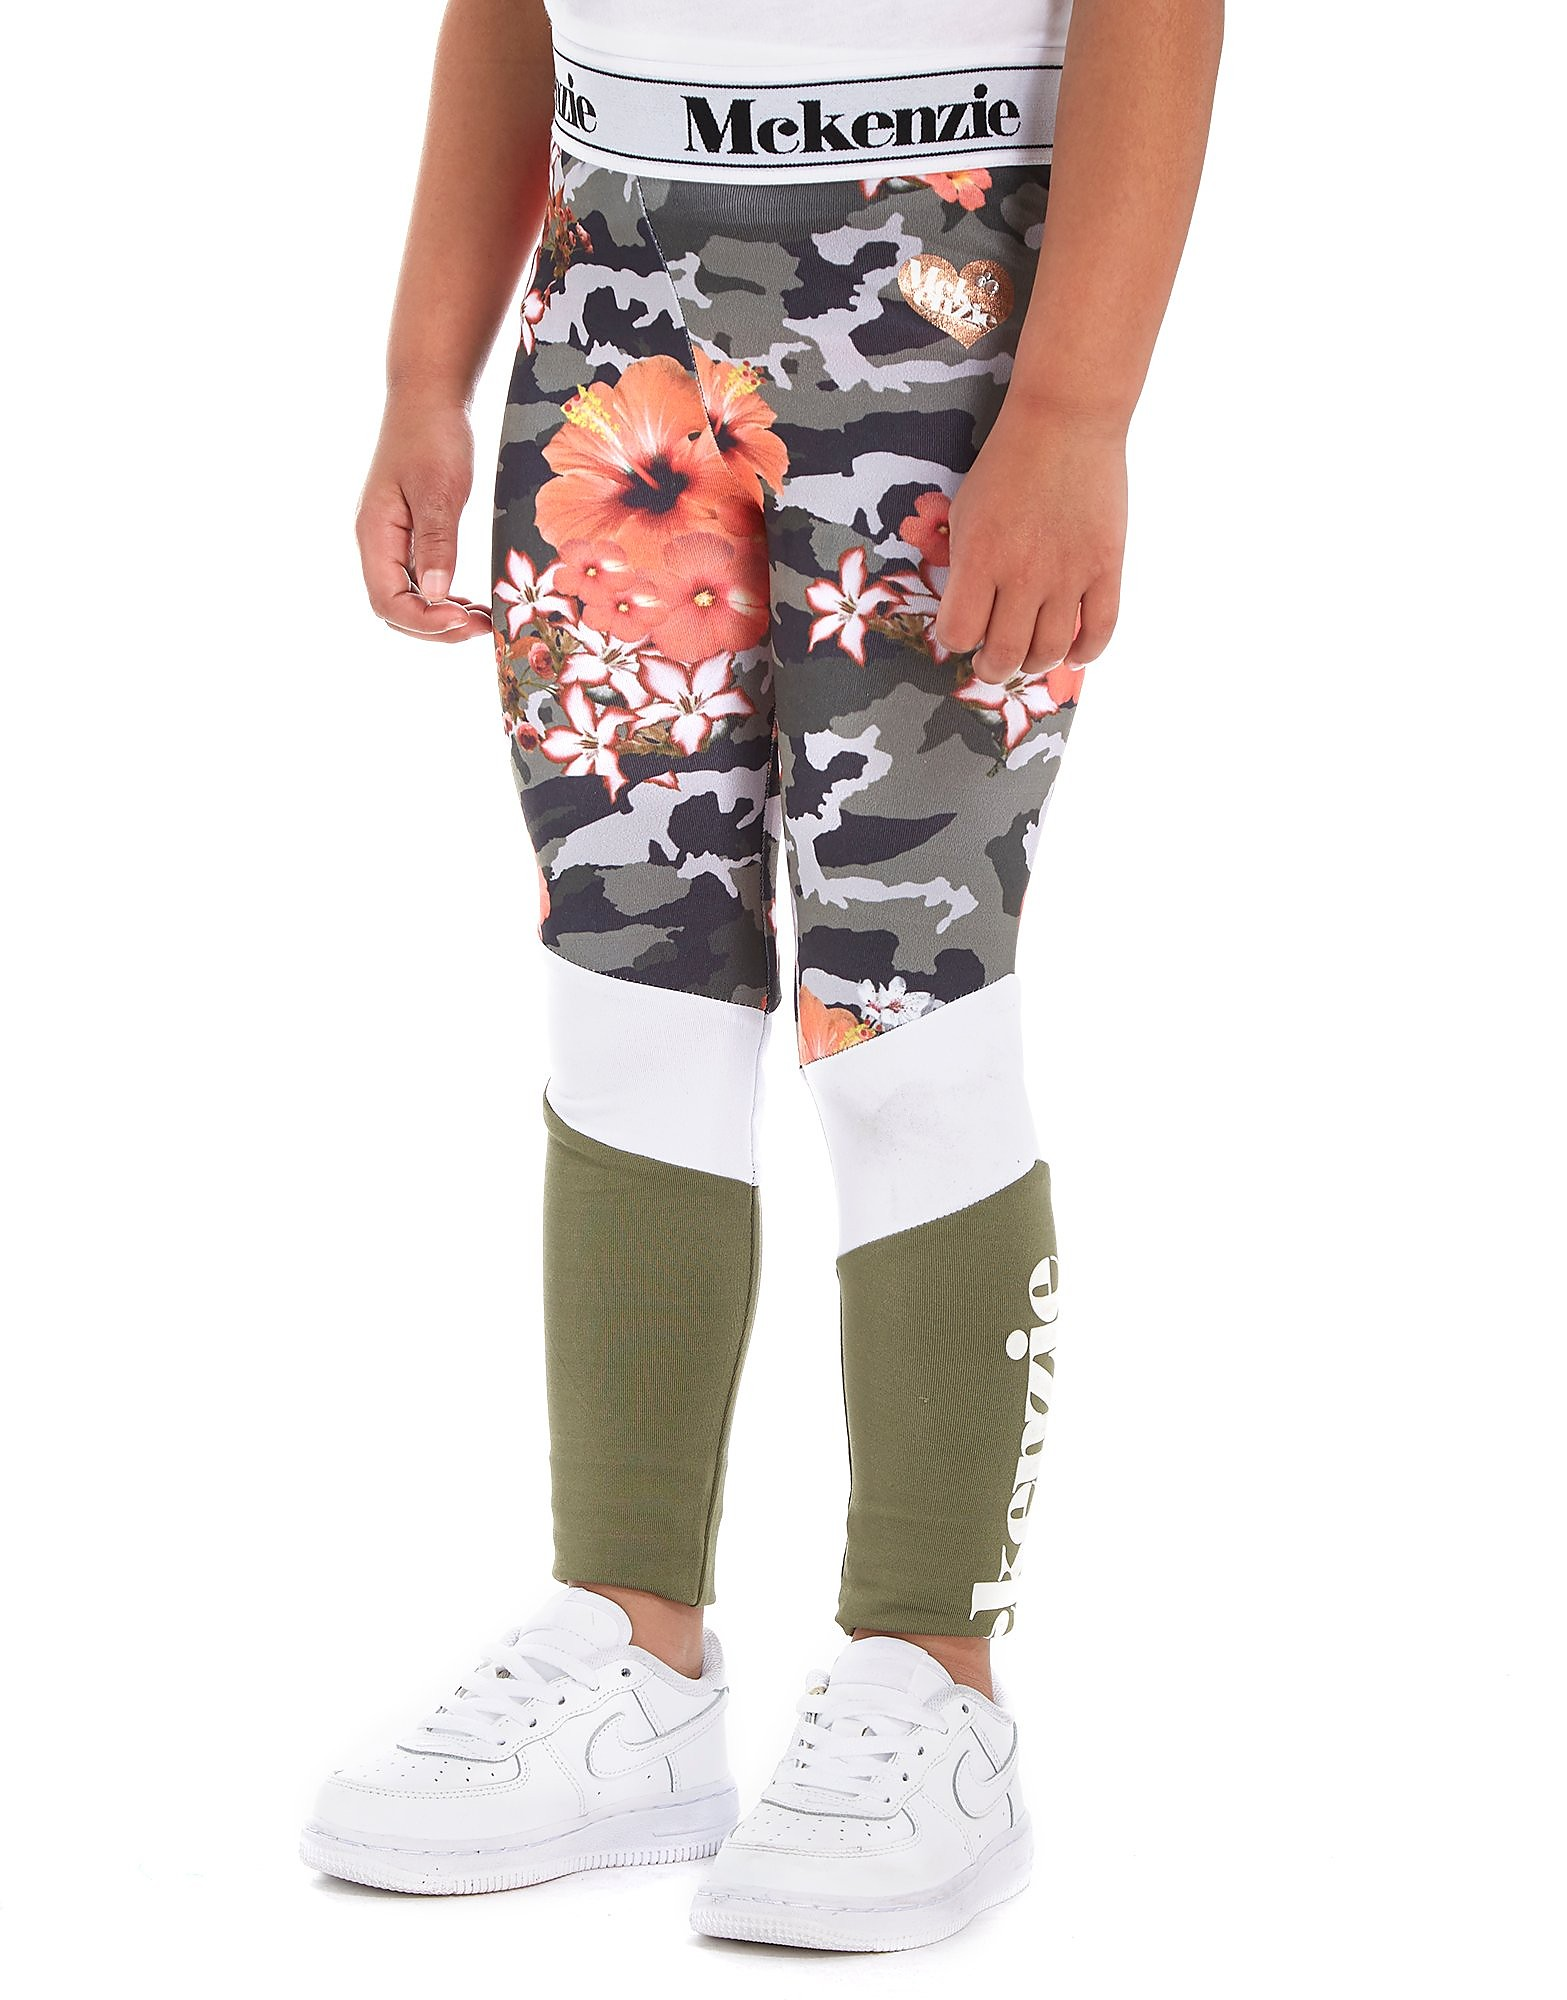 McKenzie Girls' Summer Leggings Children